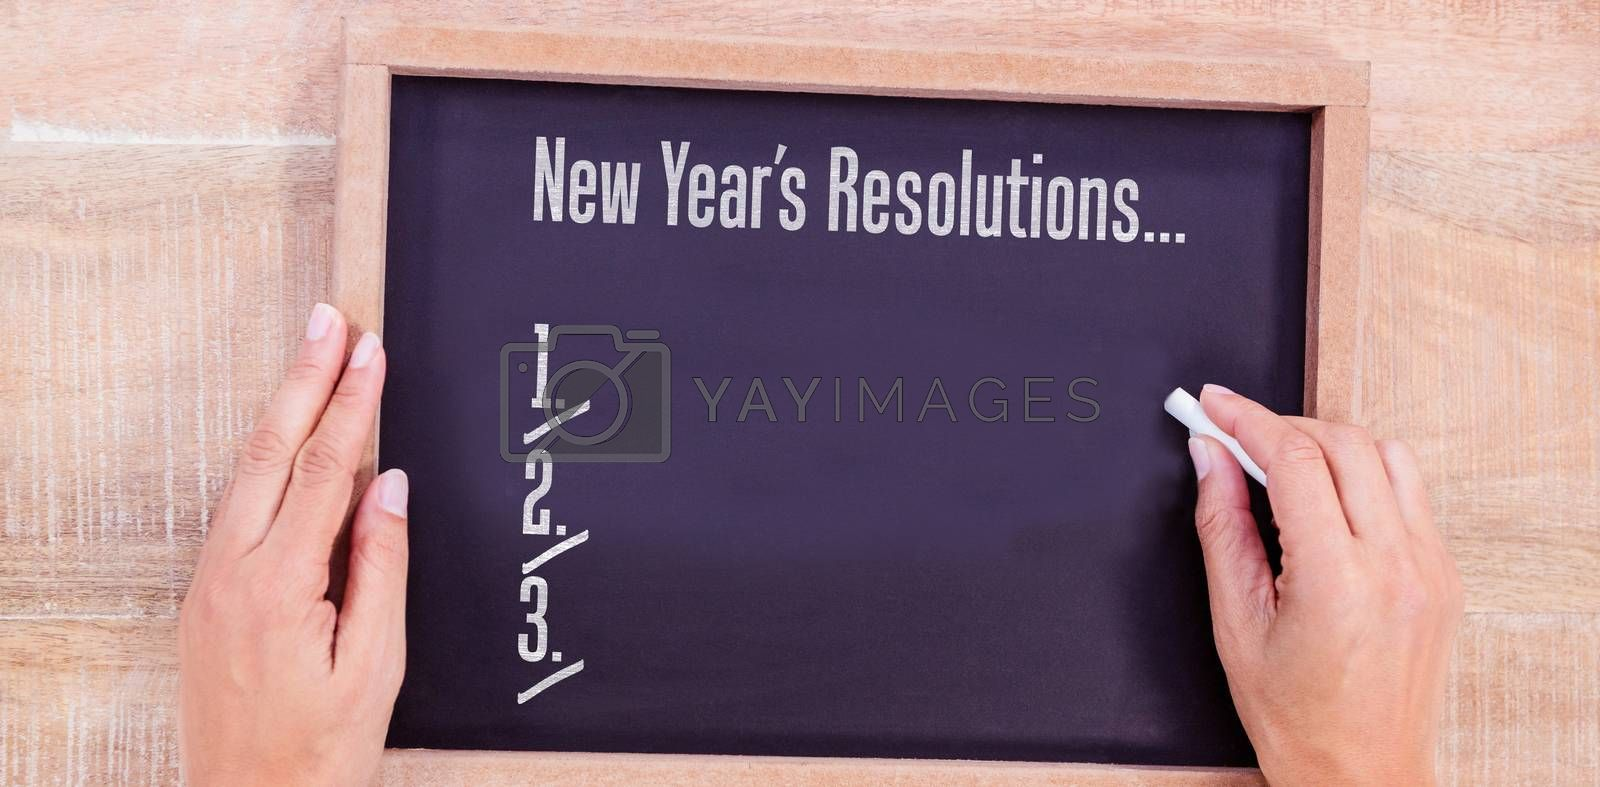 New years resolution list against hand writing on chalkboard